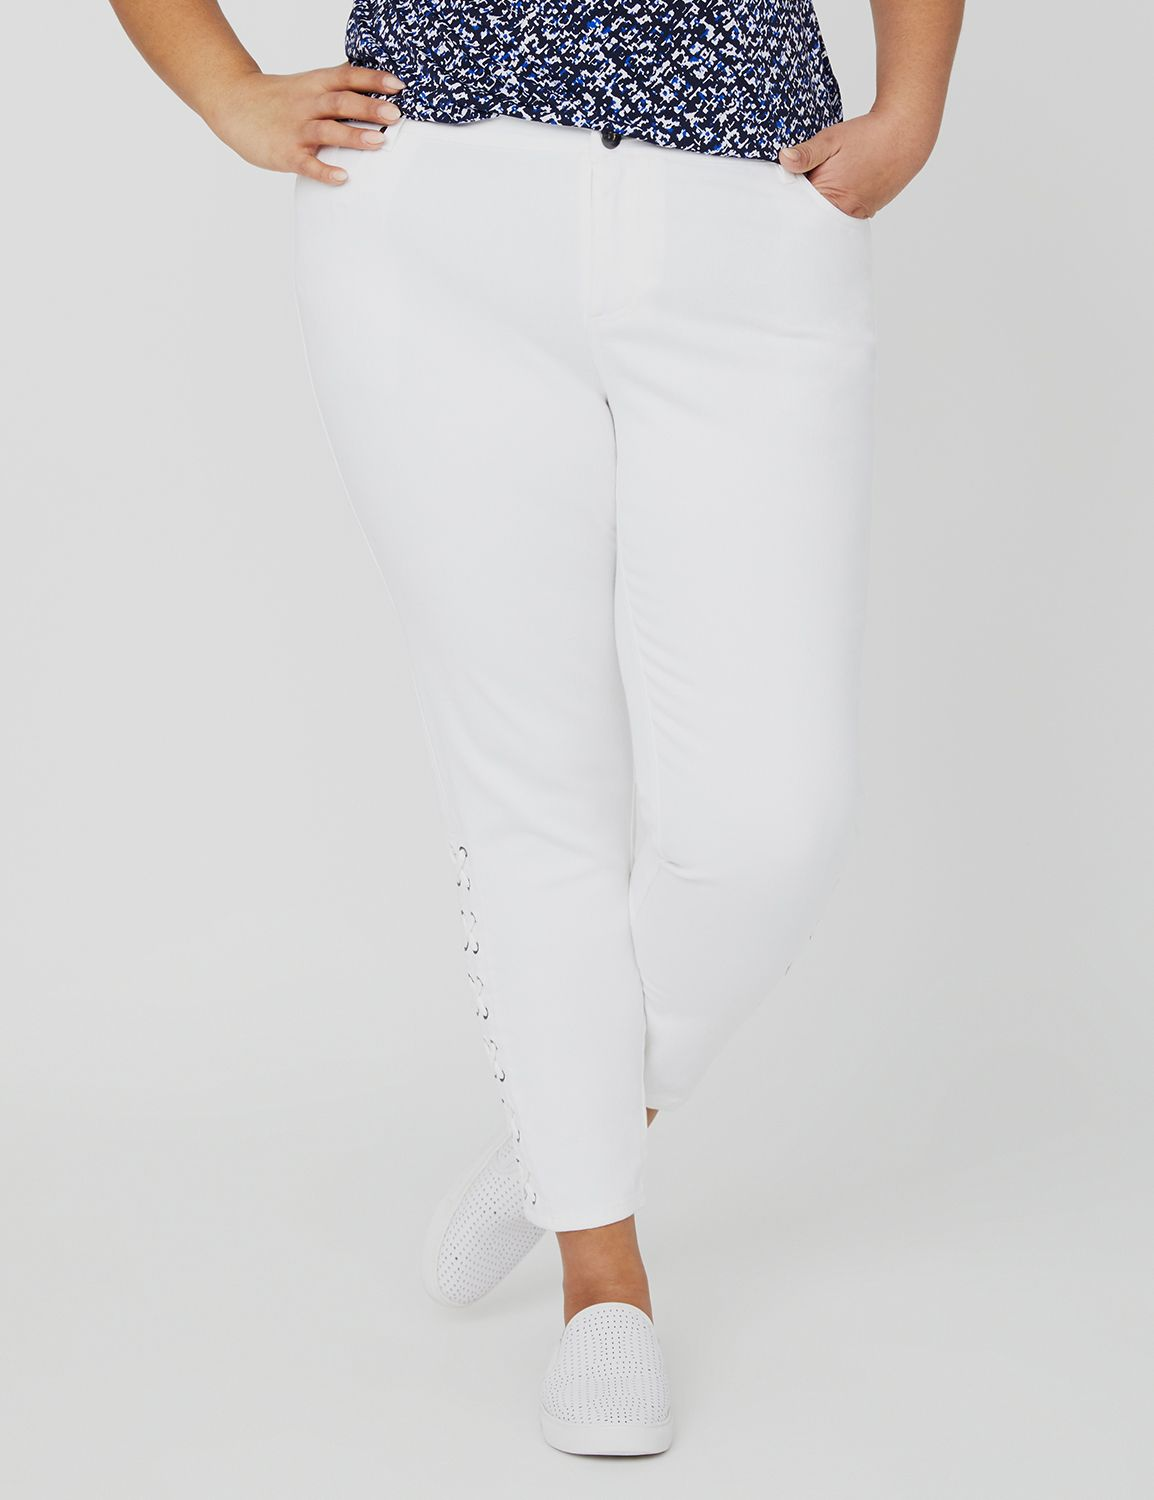 Curvy Collection Lace-Up White Jean 1091485 Curvy Collection Sateen Whi MP-300098716